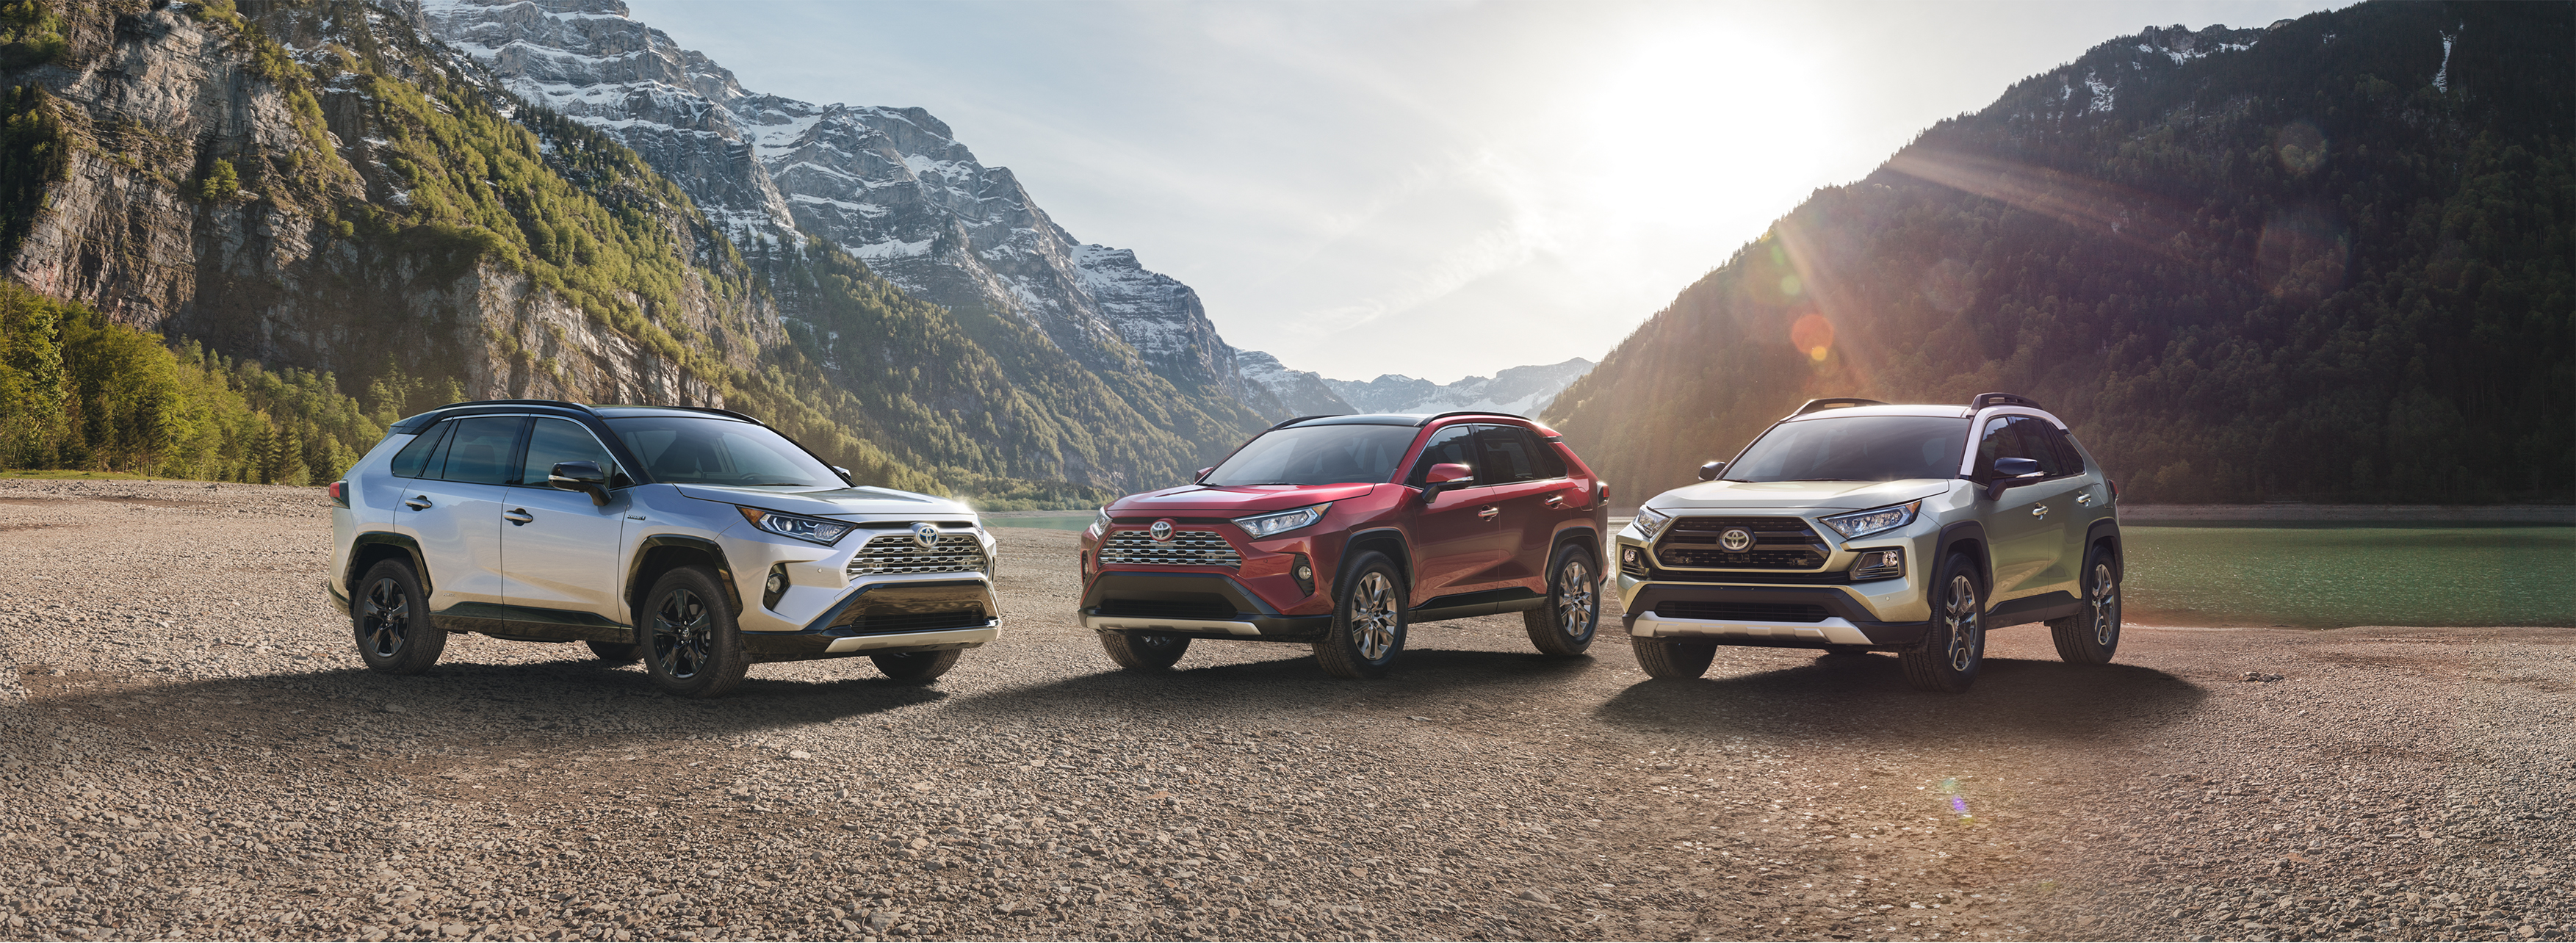 2019_Toyota_RAV4_XSE_Limited_Trail